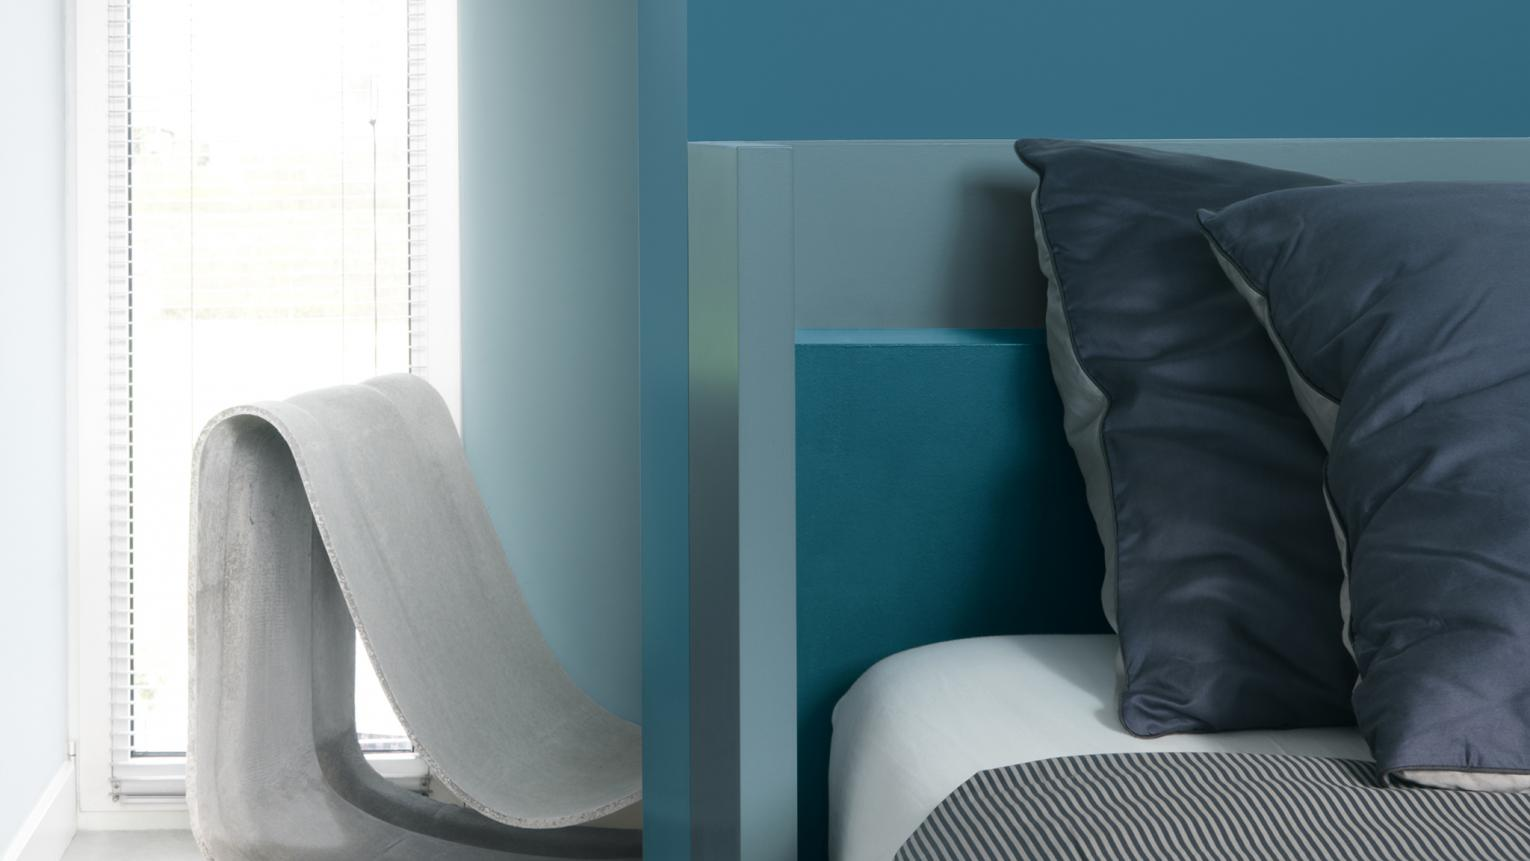 Combine varying shades of teal for a dreamy bedroom feel.